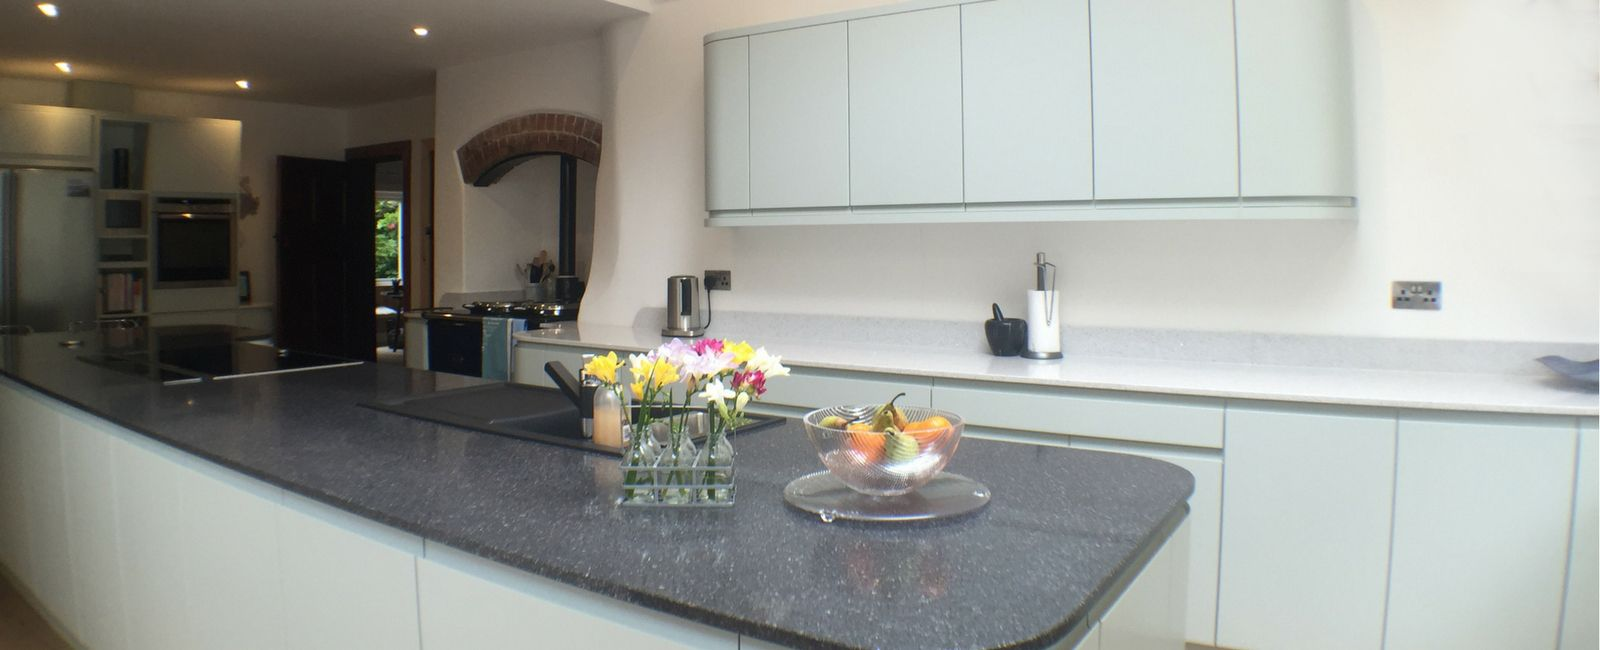 Incroyable Wisteria Cottage Kitchen Simply Kitchens, Plymouth. Kitchen Design And  Fitting.